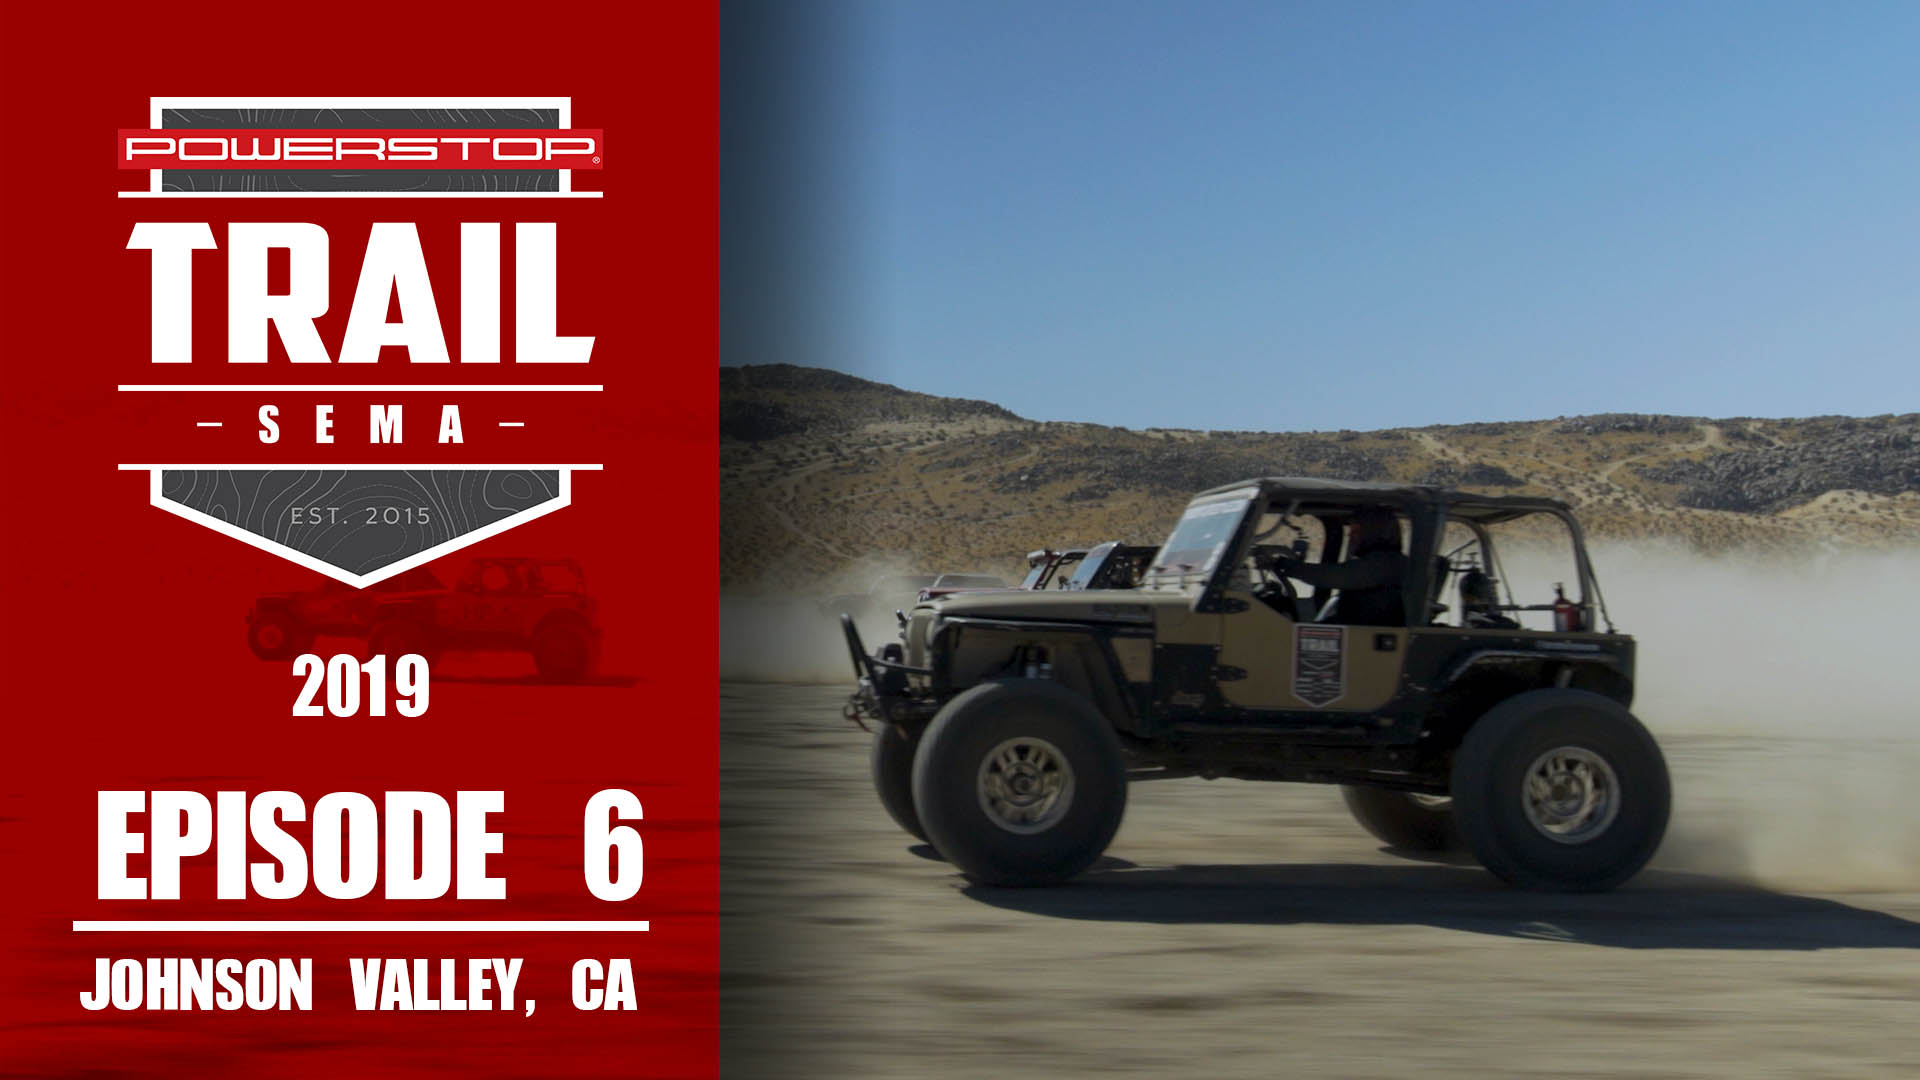 Trail To SEMA Episode 6 Backdoor & Desert Drag Race